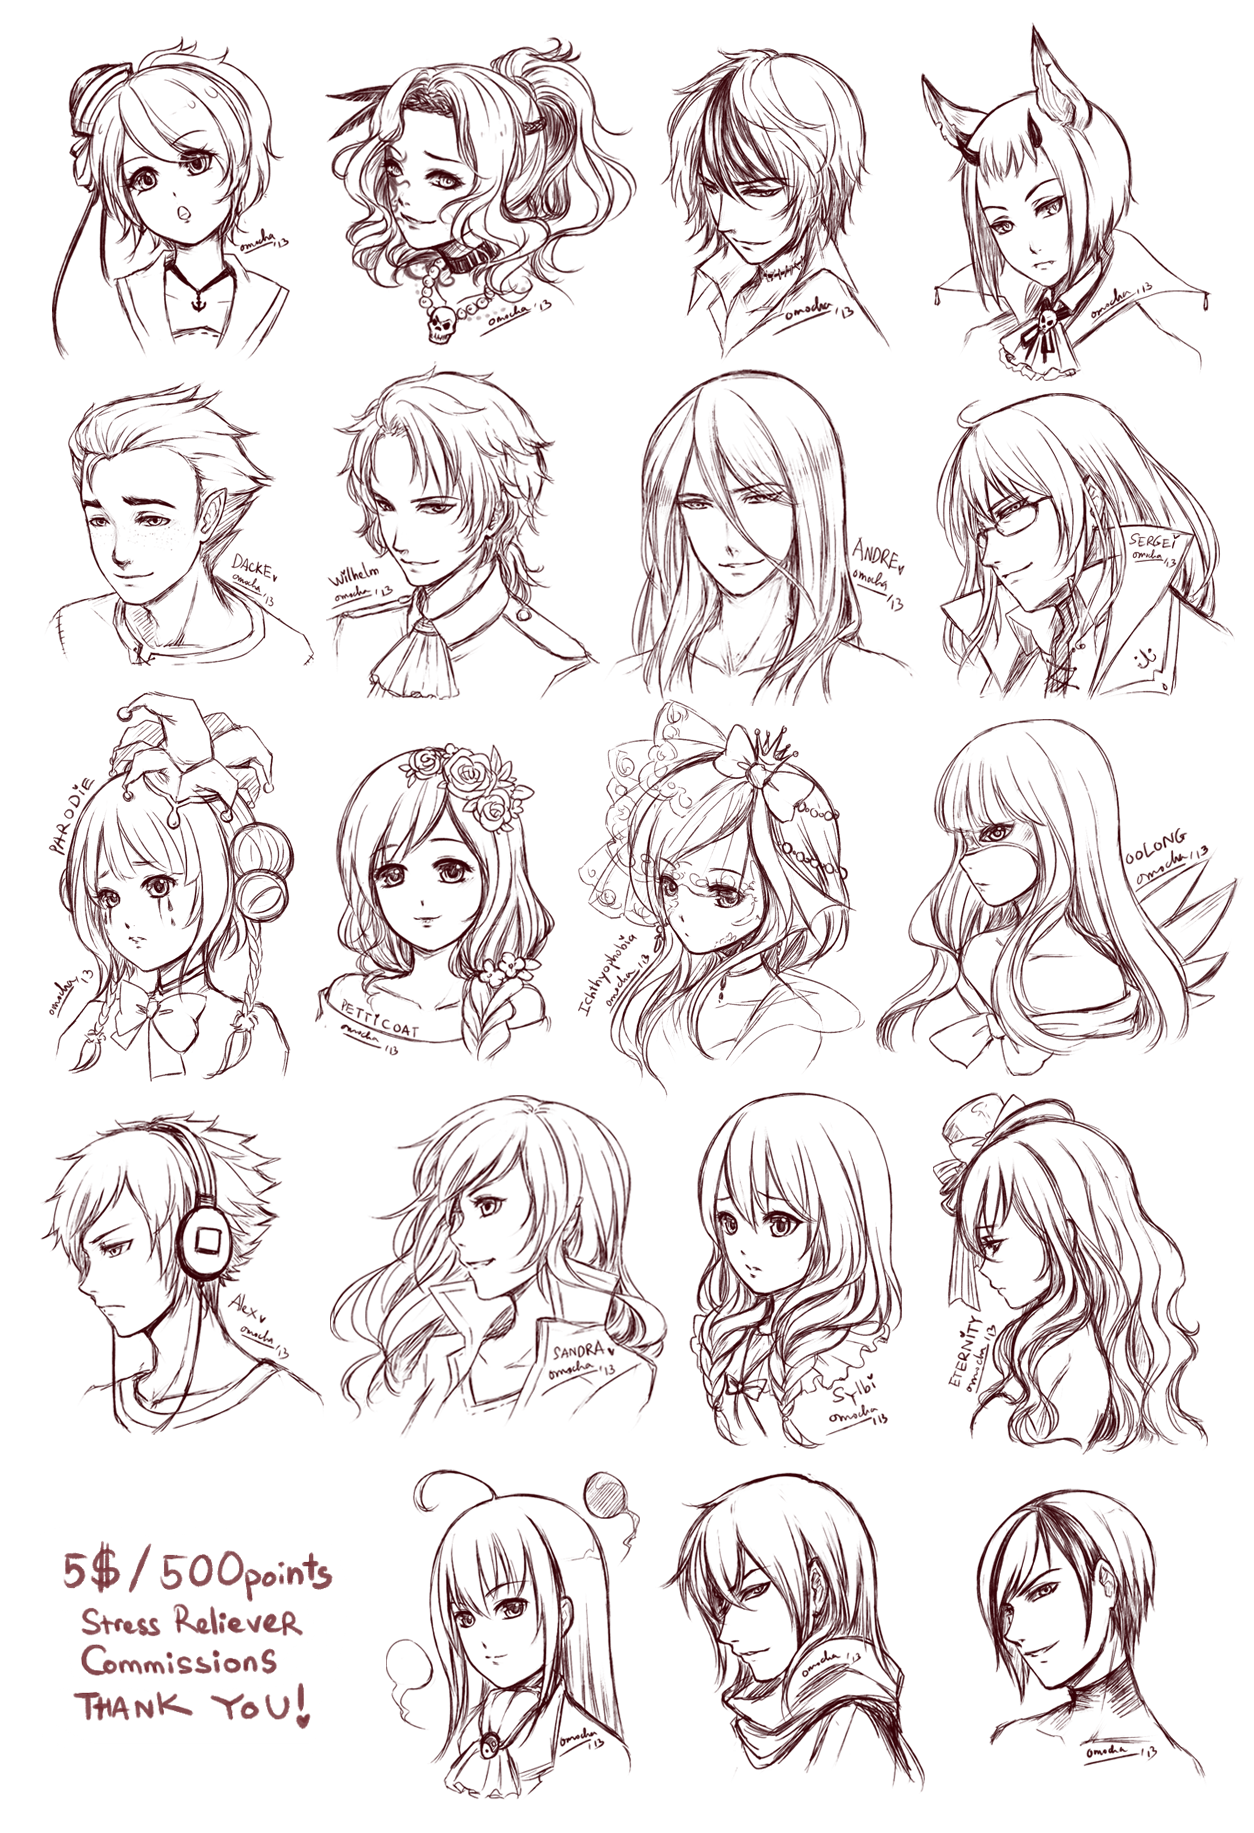 Anime Hairstyles Short : anime, hairstyles, short, Batch7, ZenithOmocha, DeviantART, Manga, Hair,, Anime